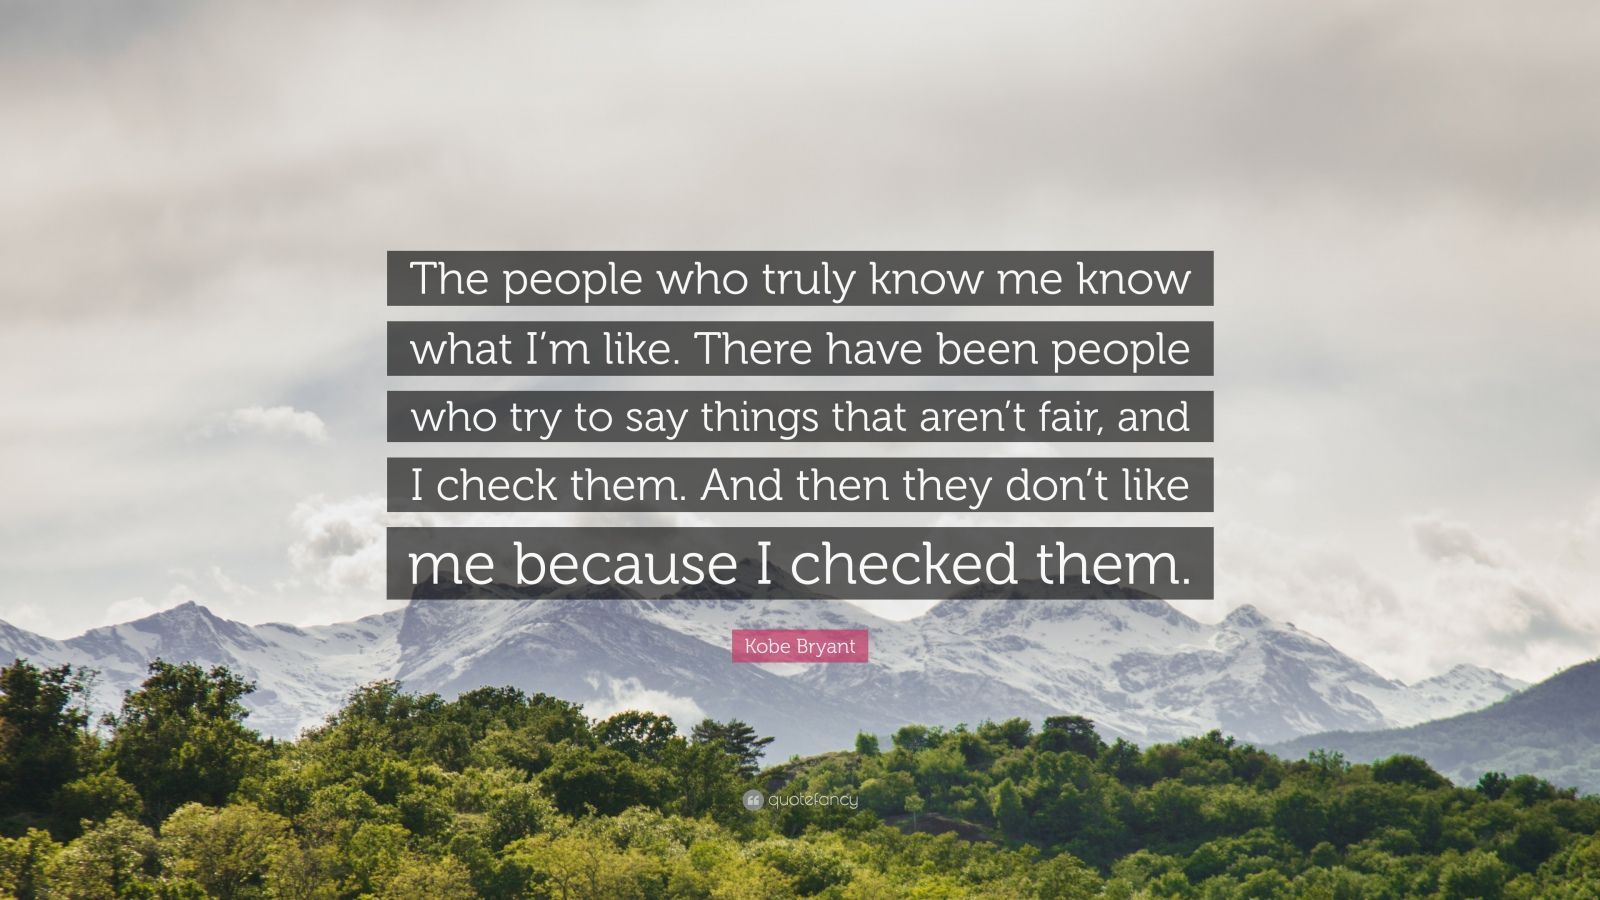 """Kobe Bryant Quote: """"The people who truly know me know what I'm like. There have been people who try to say things that aren't fair, and I check them. And then they don't like me because I checked them."""""""